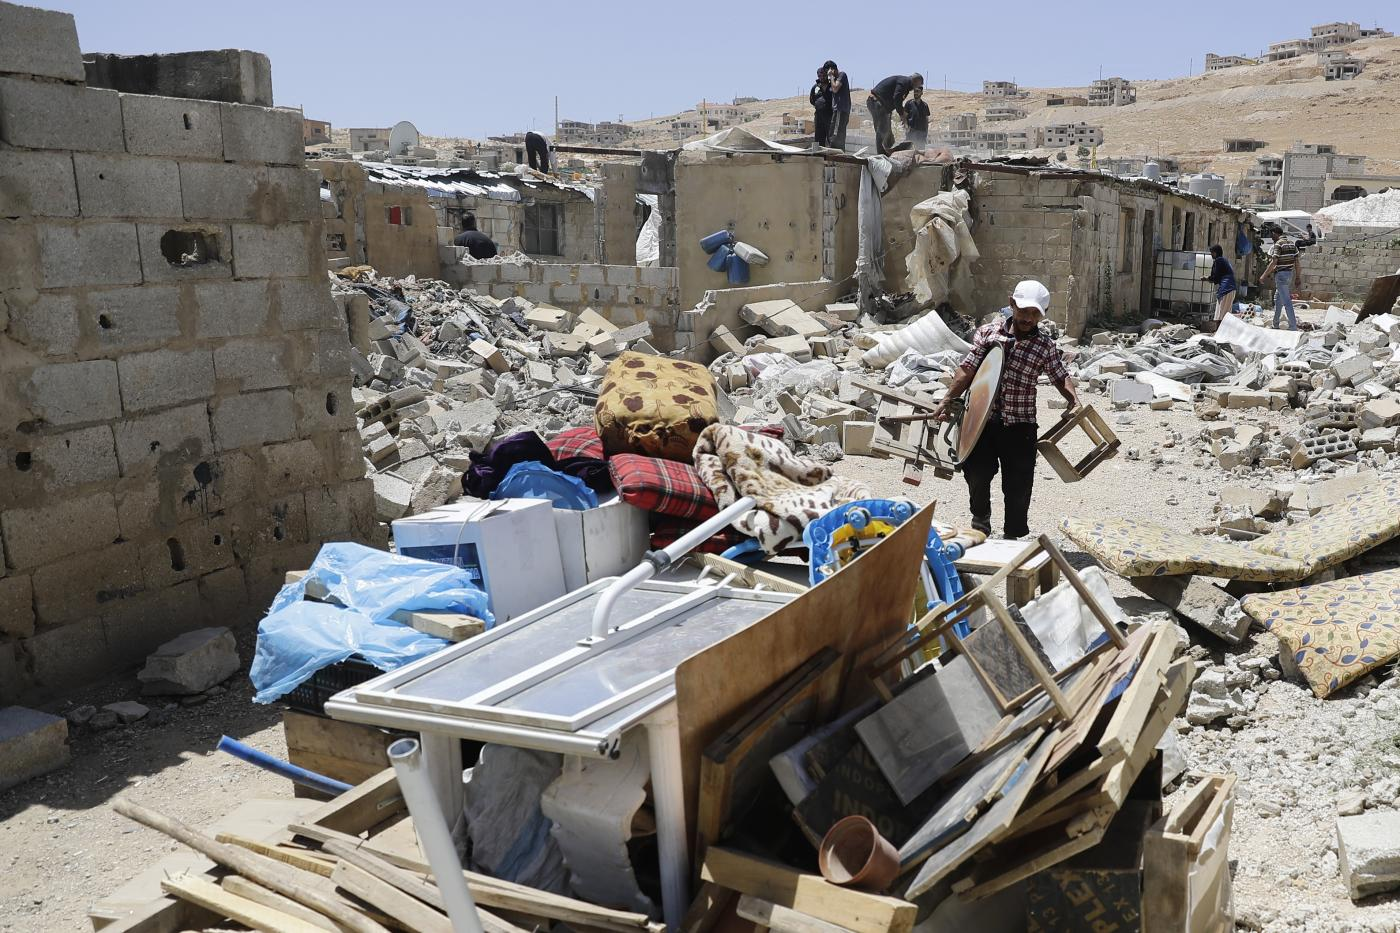 A Syrian man gathers his belongings as workers demolish cement block shelters at a refugee camp in the northeastern Lebanese town of Arsal, in the Bekaa valley